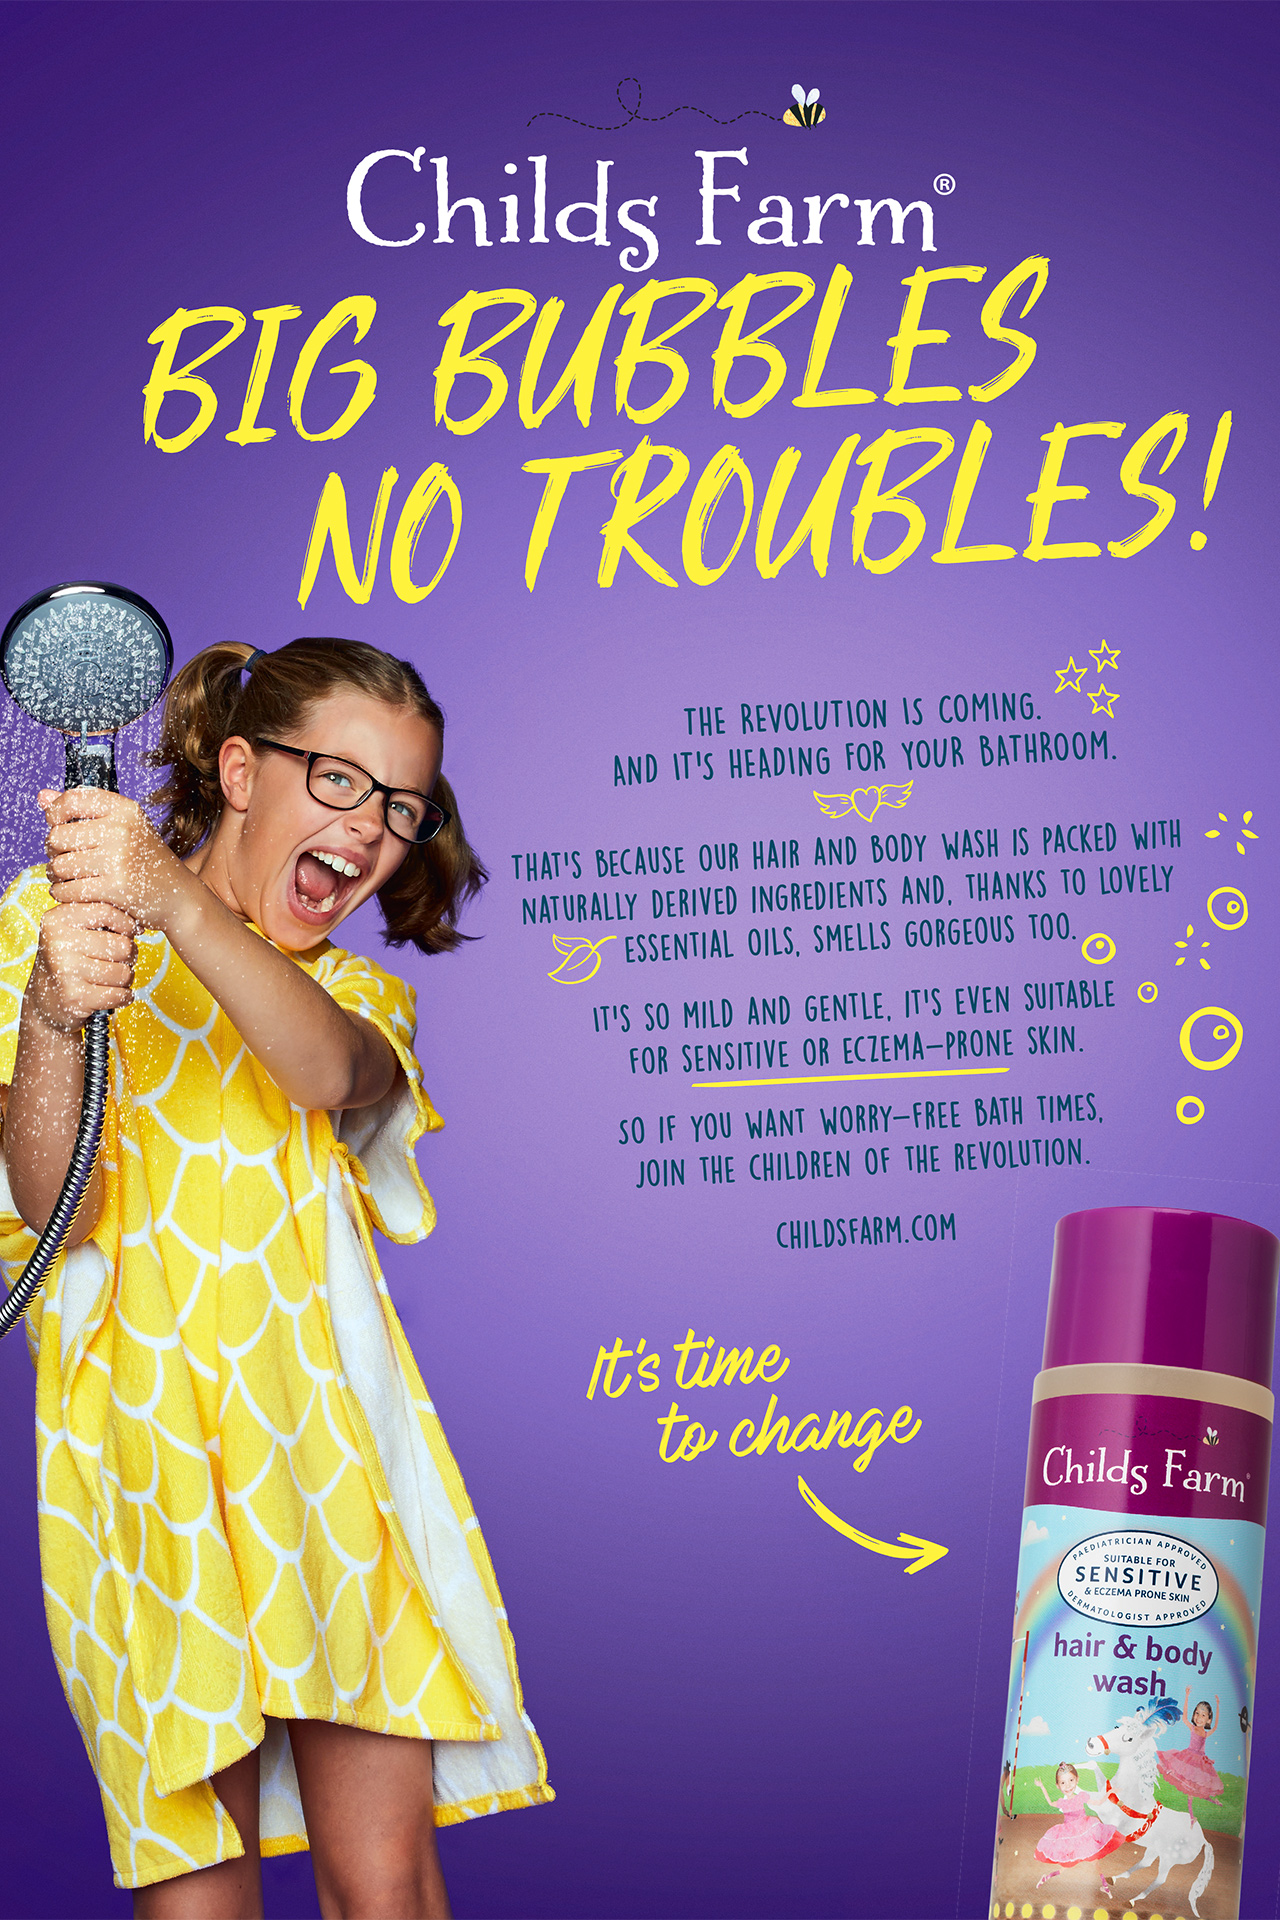 Childs Farm Advert BIG BUBBLES NO TROUBLES 2